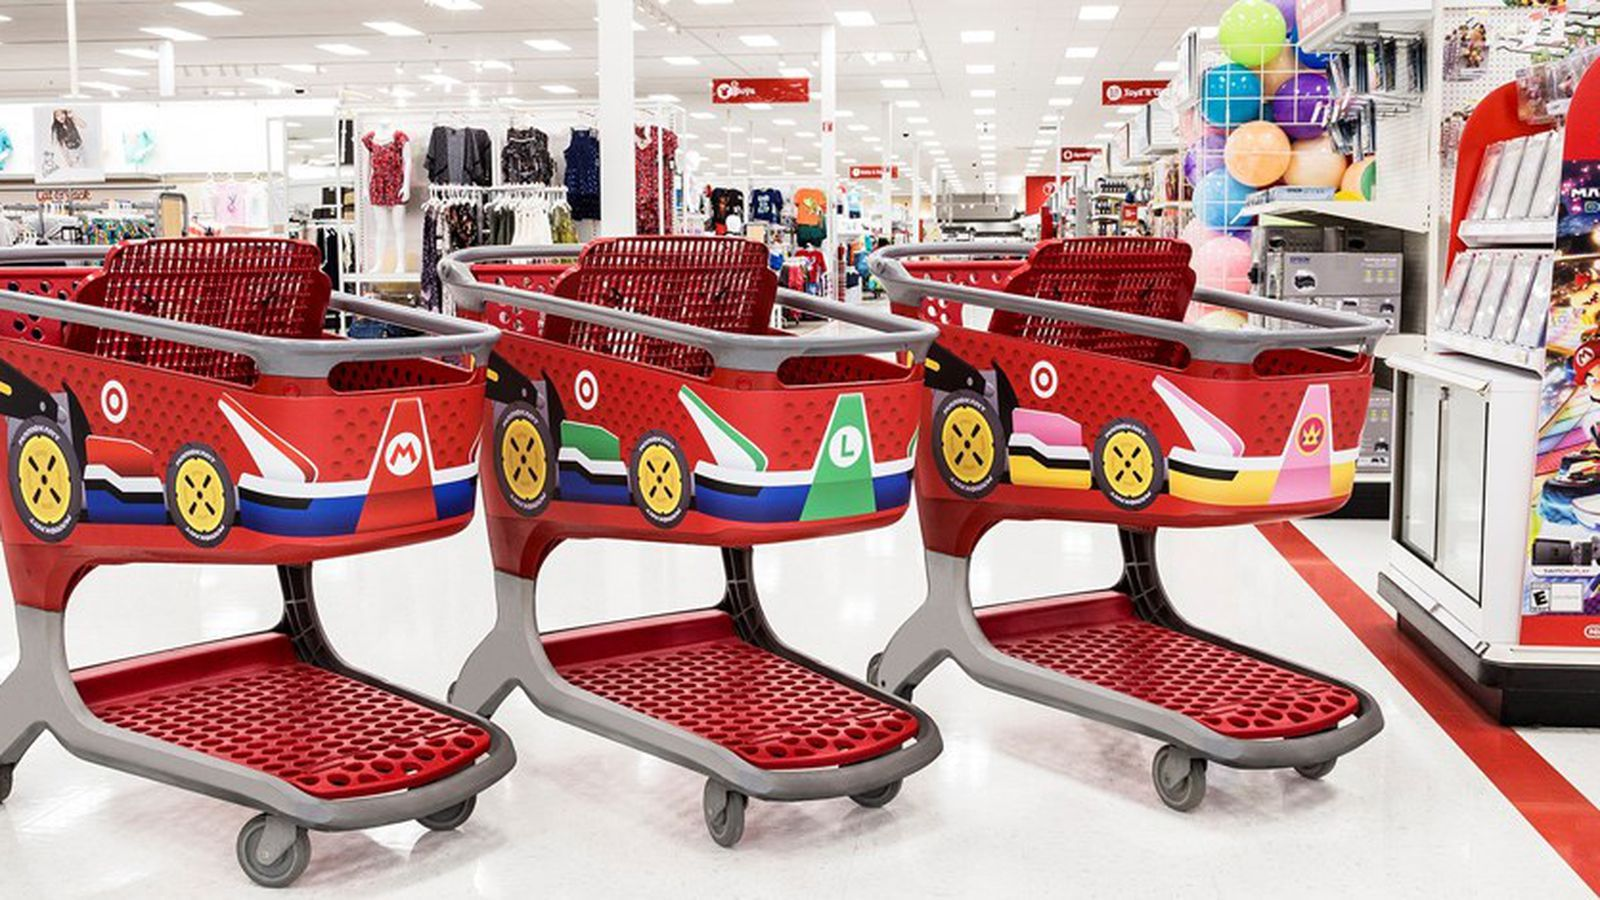 Target is playing a dangerous game by turning shopping carts into Mario Karts